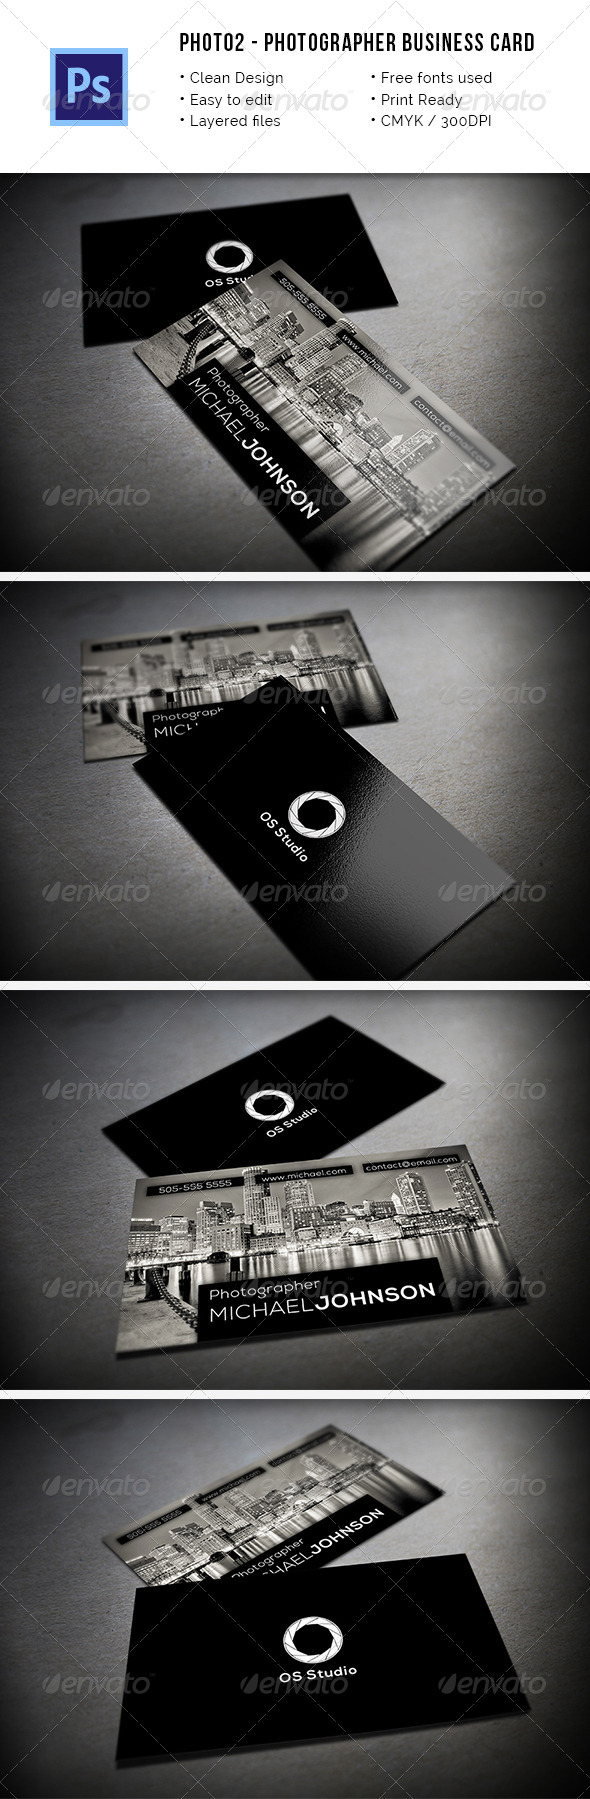 Photo2 - Photographer Business Card - Industry Specific Business Cards